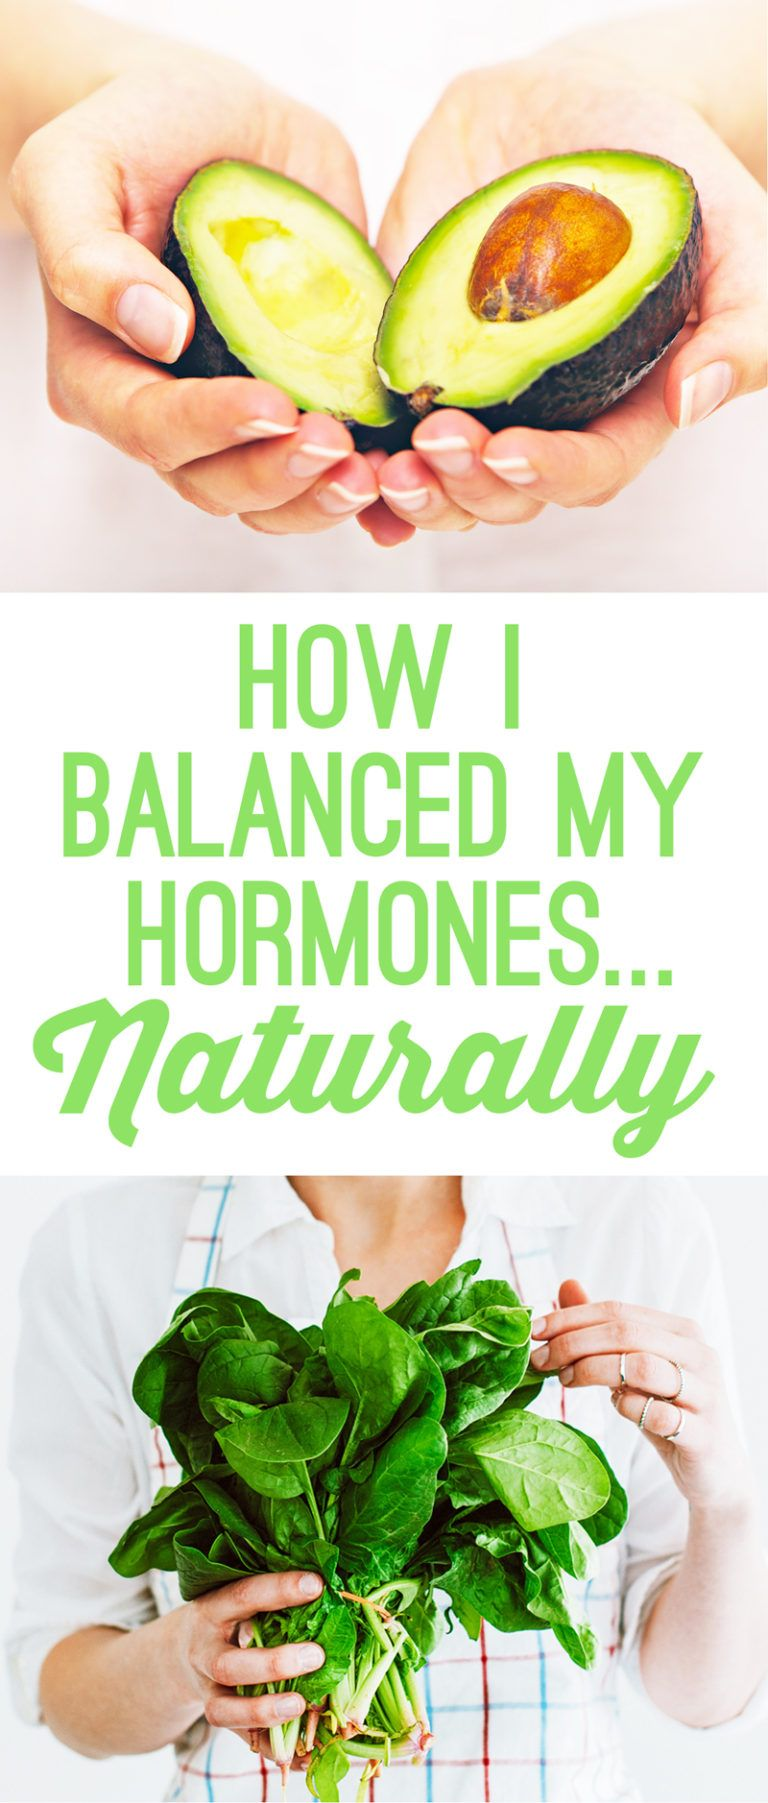 How i balanced my hormones and how im still working on